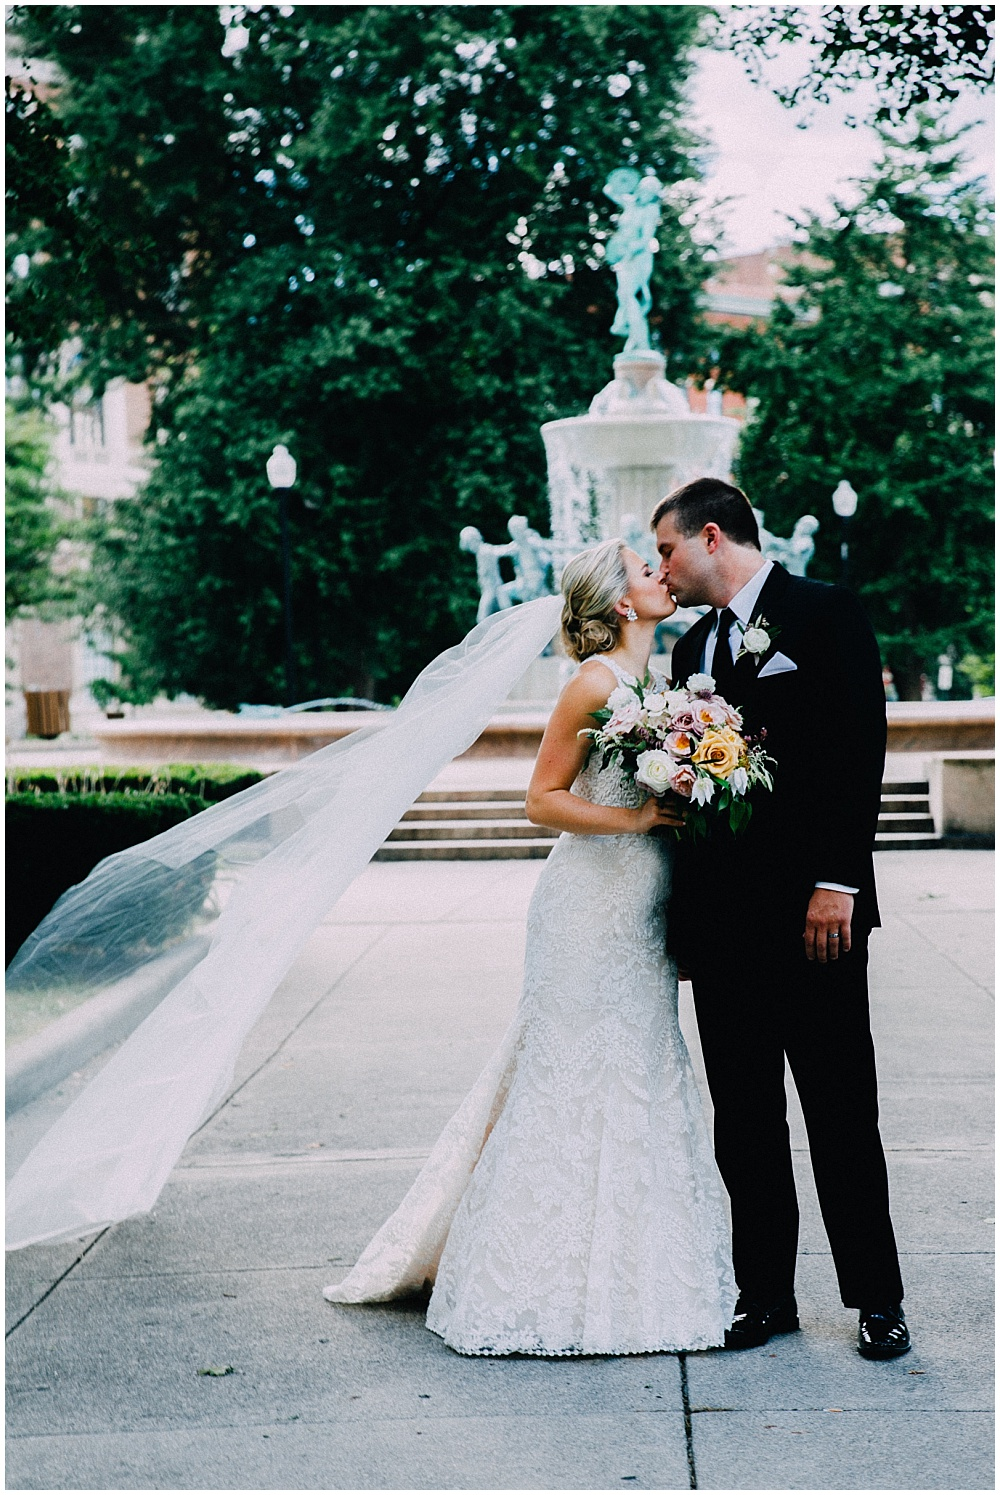 Bride and Groom, and summer wedding bouquet | Downtown Indianapolis Wedding by Caroline Grace Photography & Jessica Dum Wedding Coordination